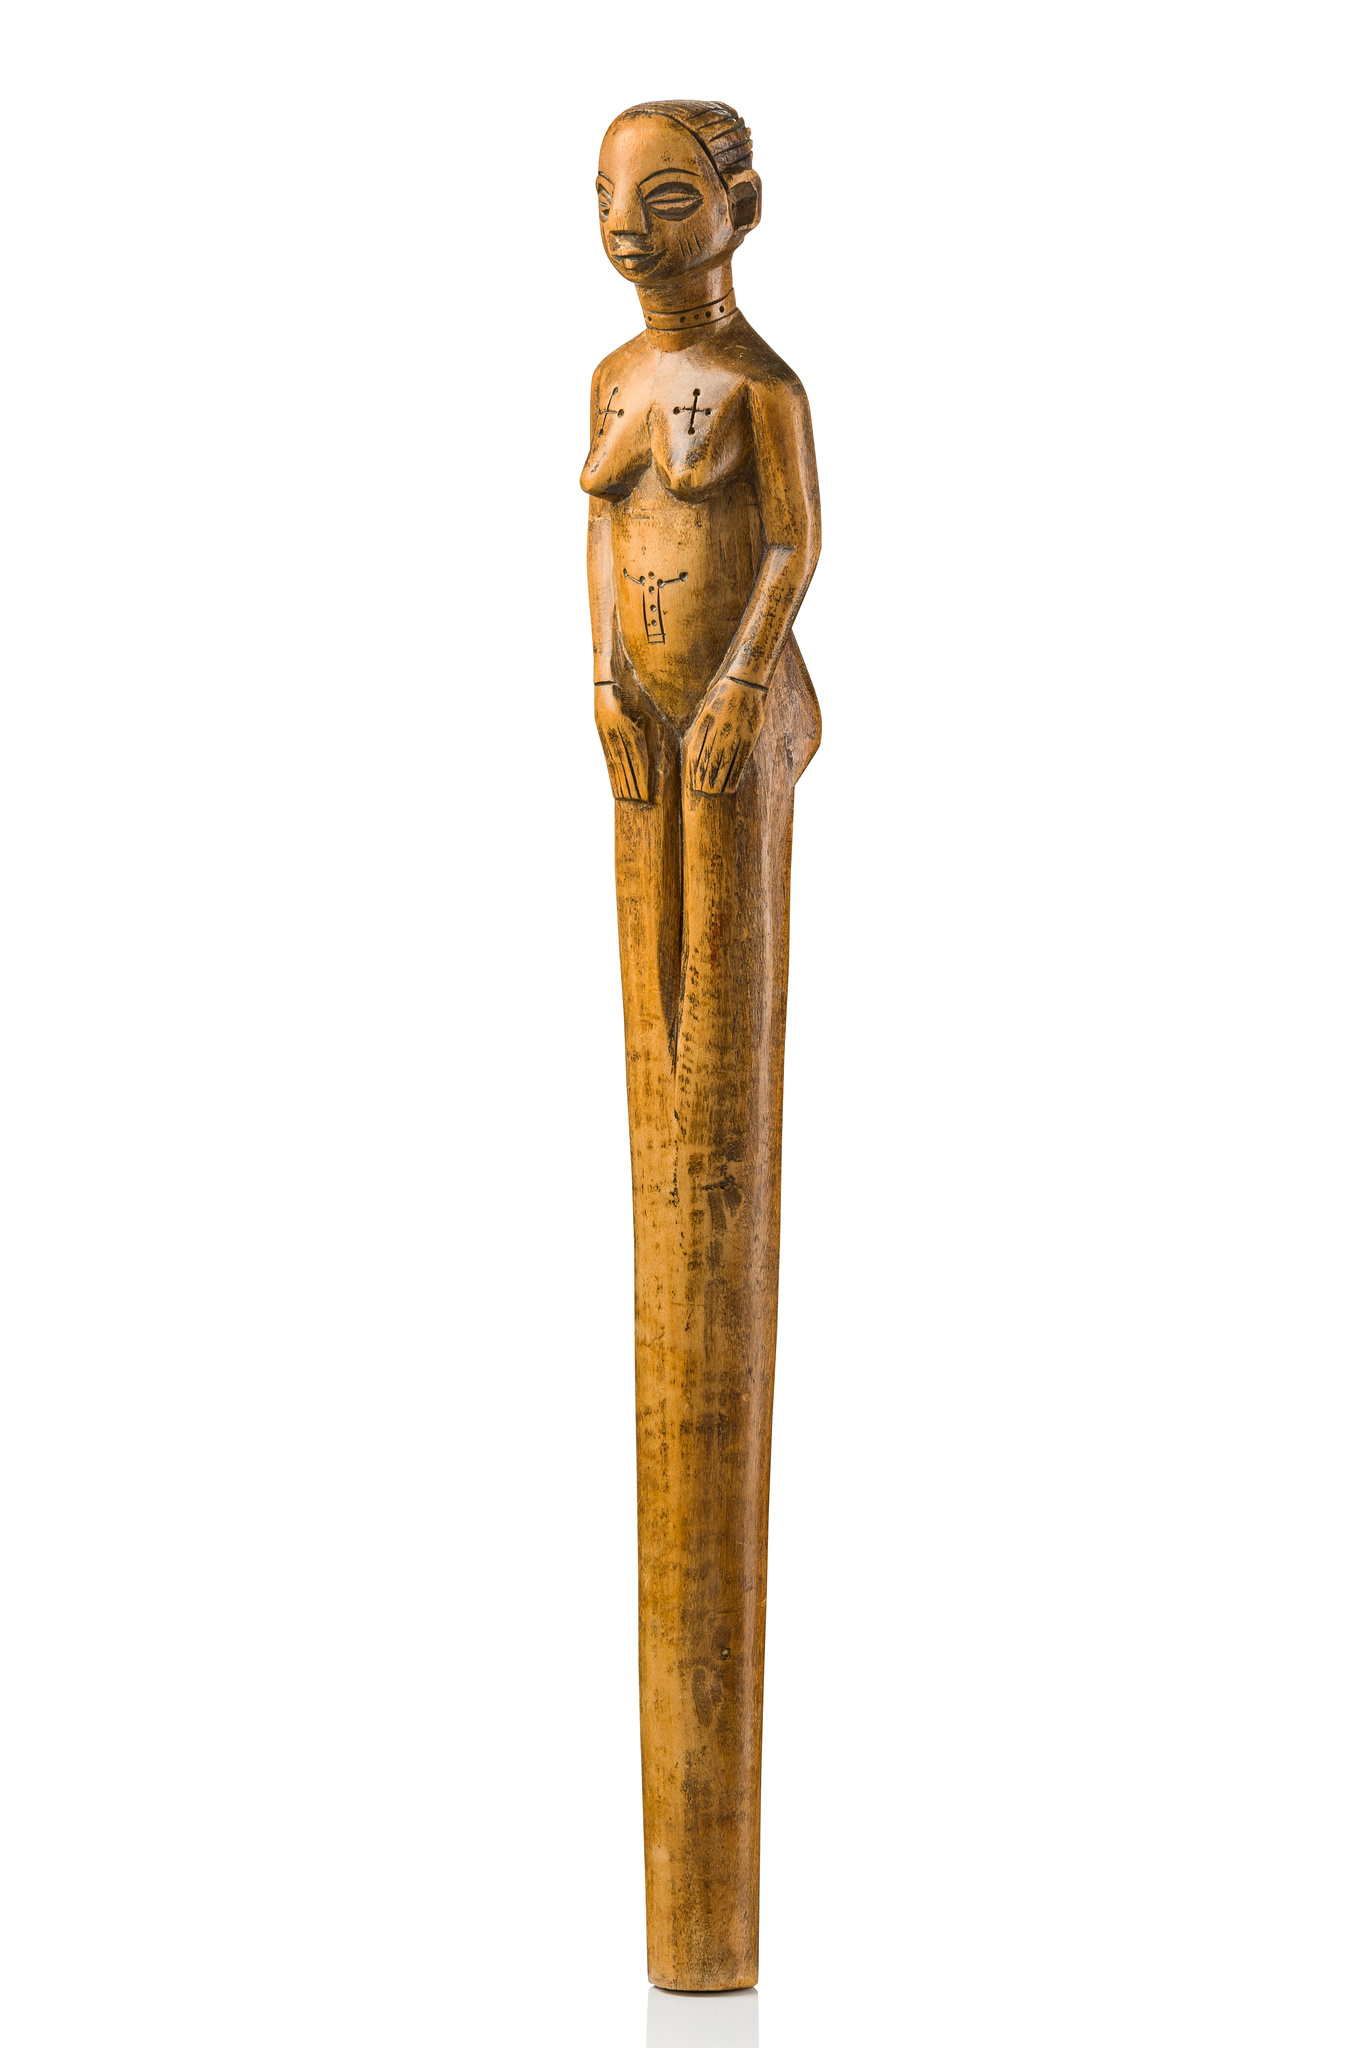 Figurally carved staff